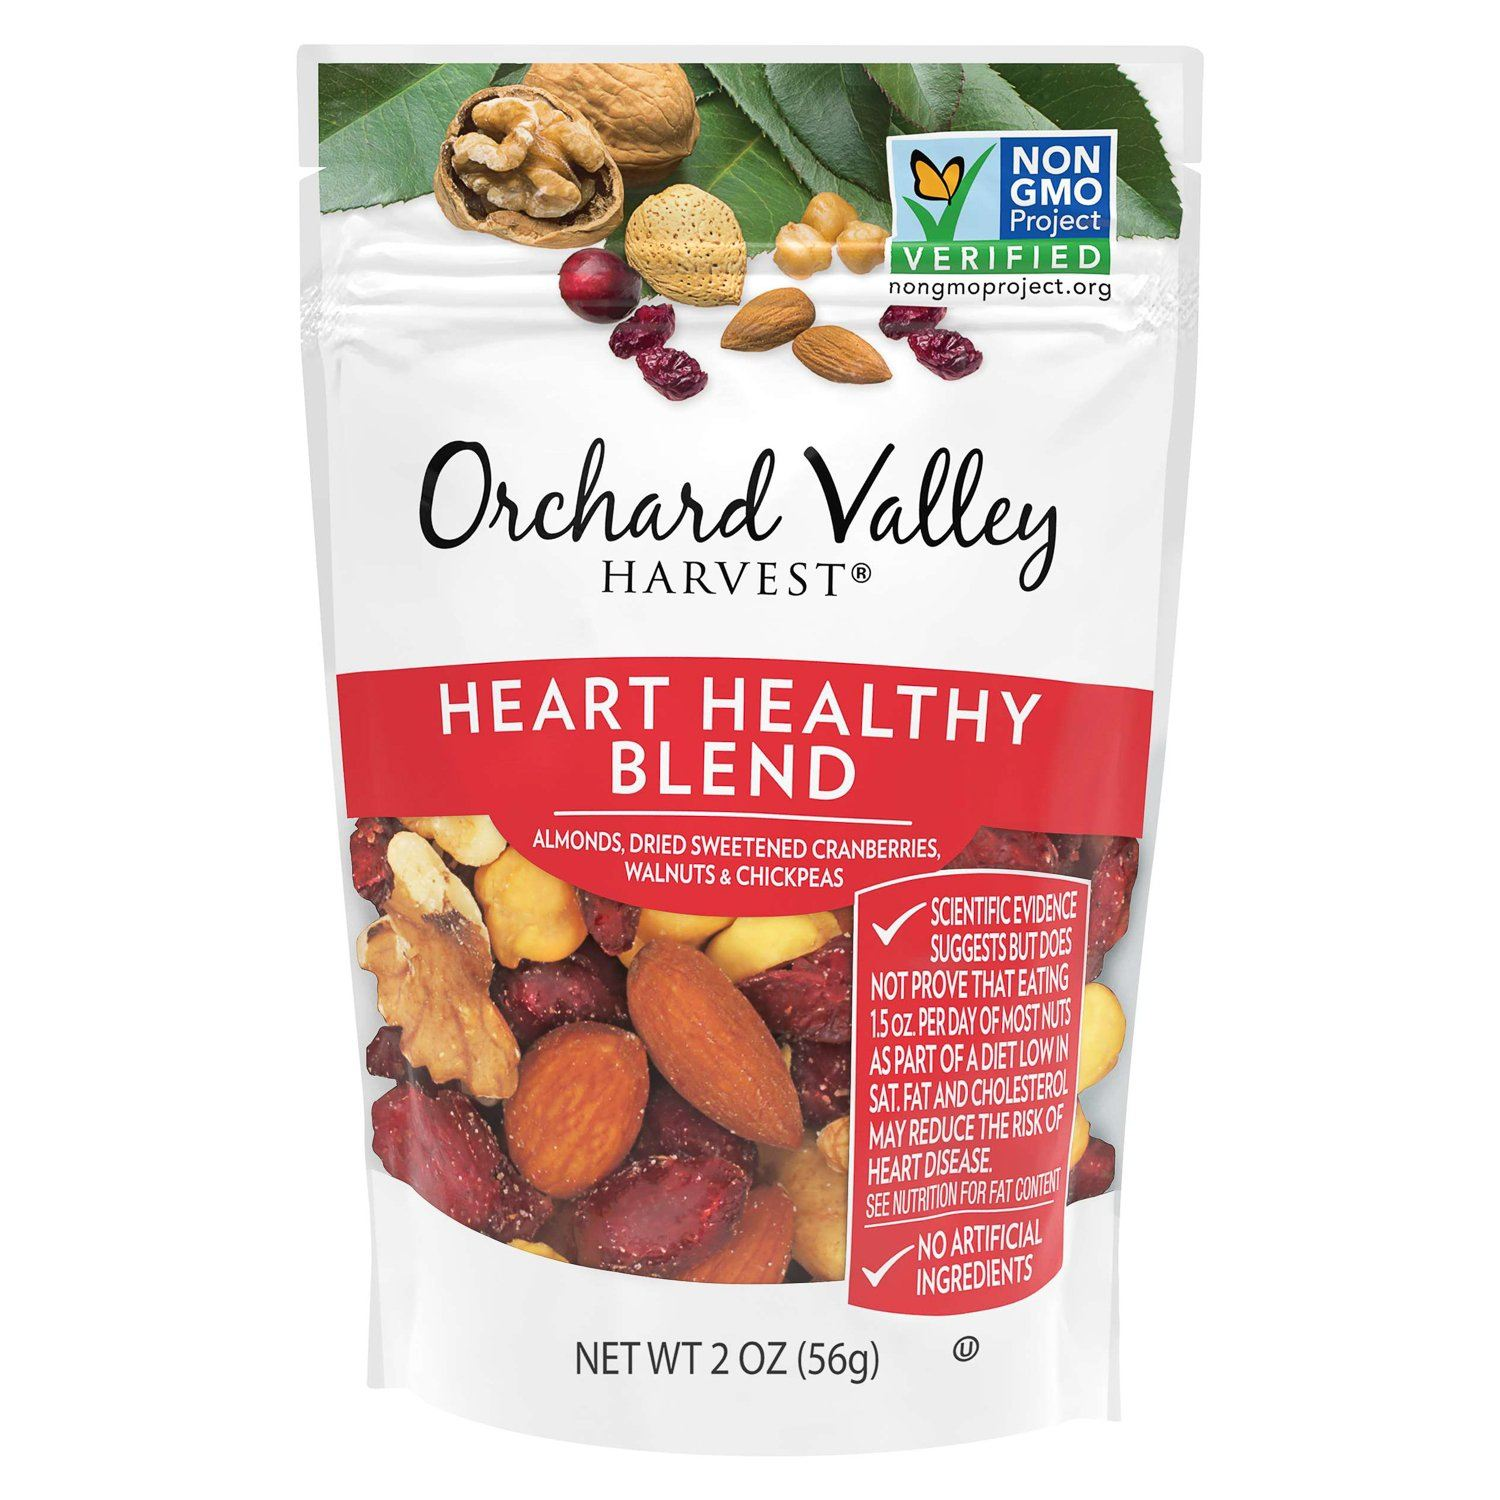 Orchard Valley Harvest Mix Orchard Valley Harvest Heart Healthy 2 Ounce